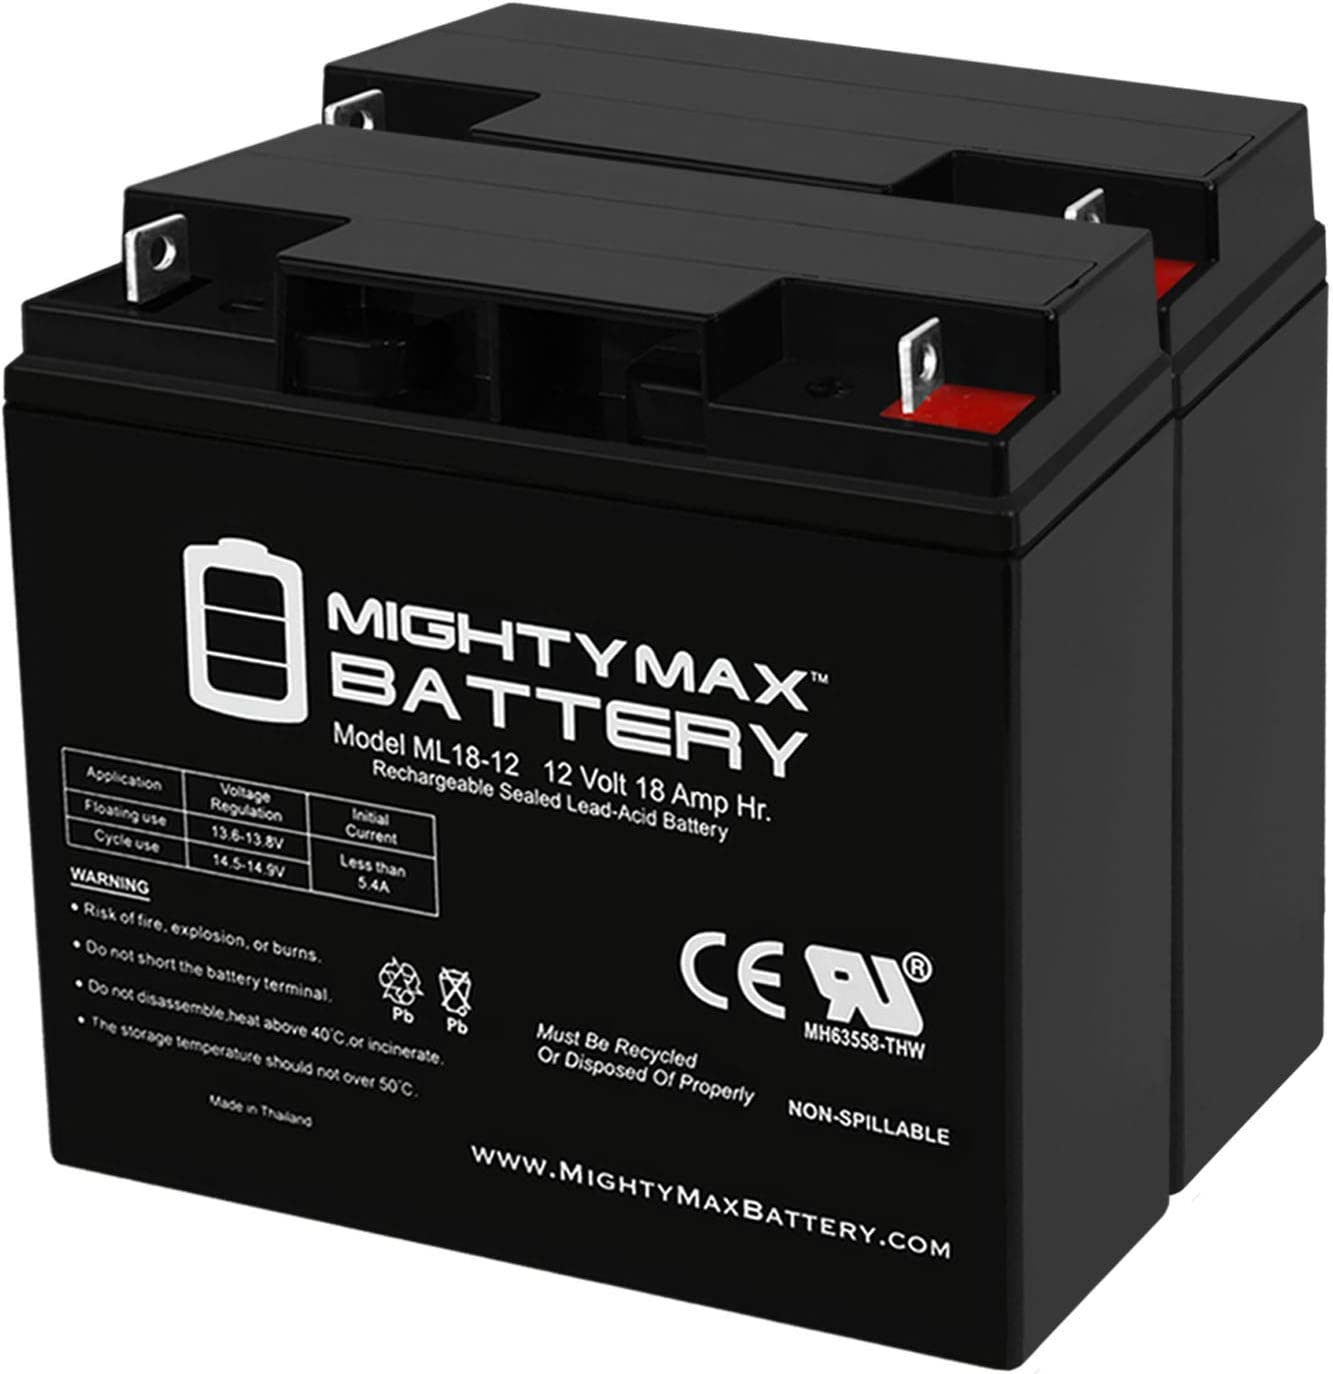 Mighty Max Battery 12V 7Ah SLA Battery Replacement for APC SU1400RM 8 Pack Brand Product